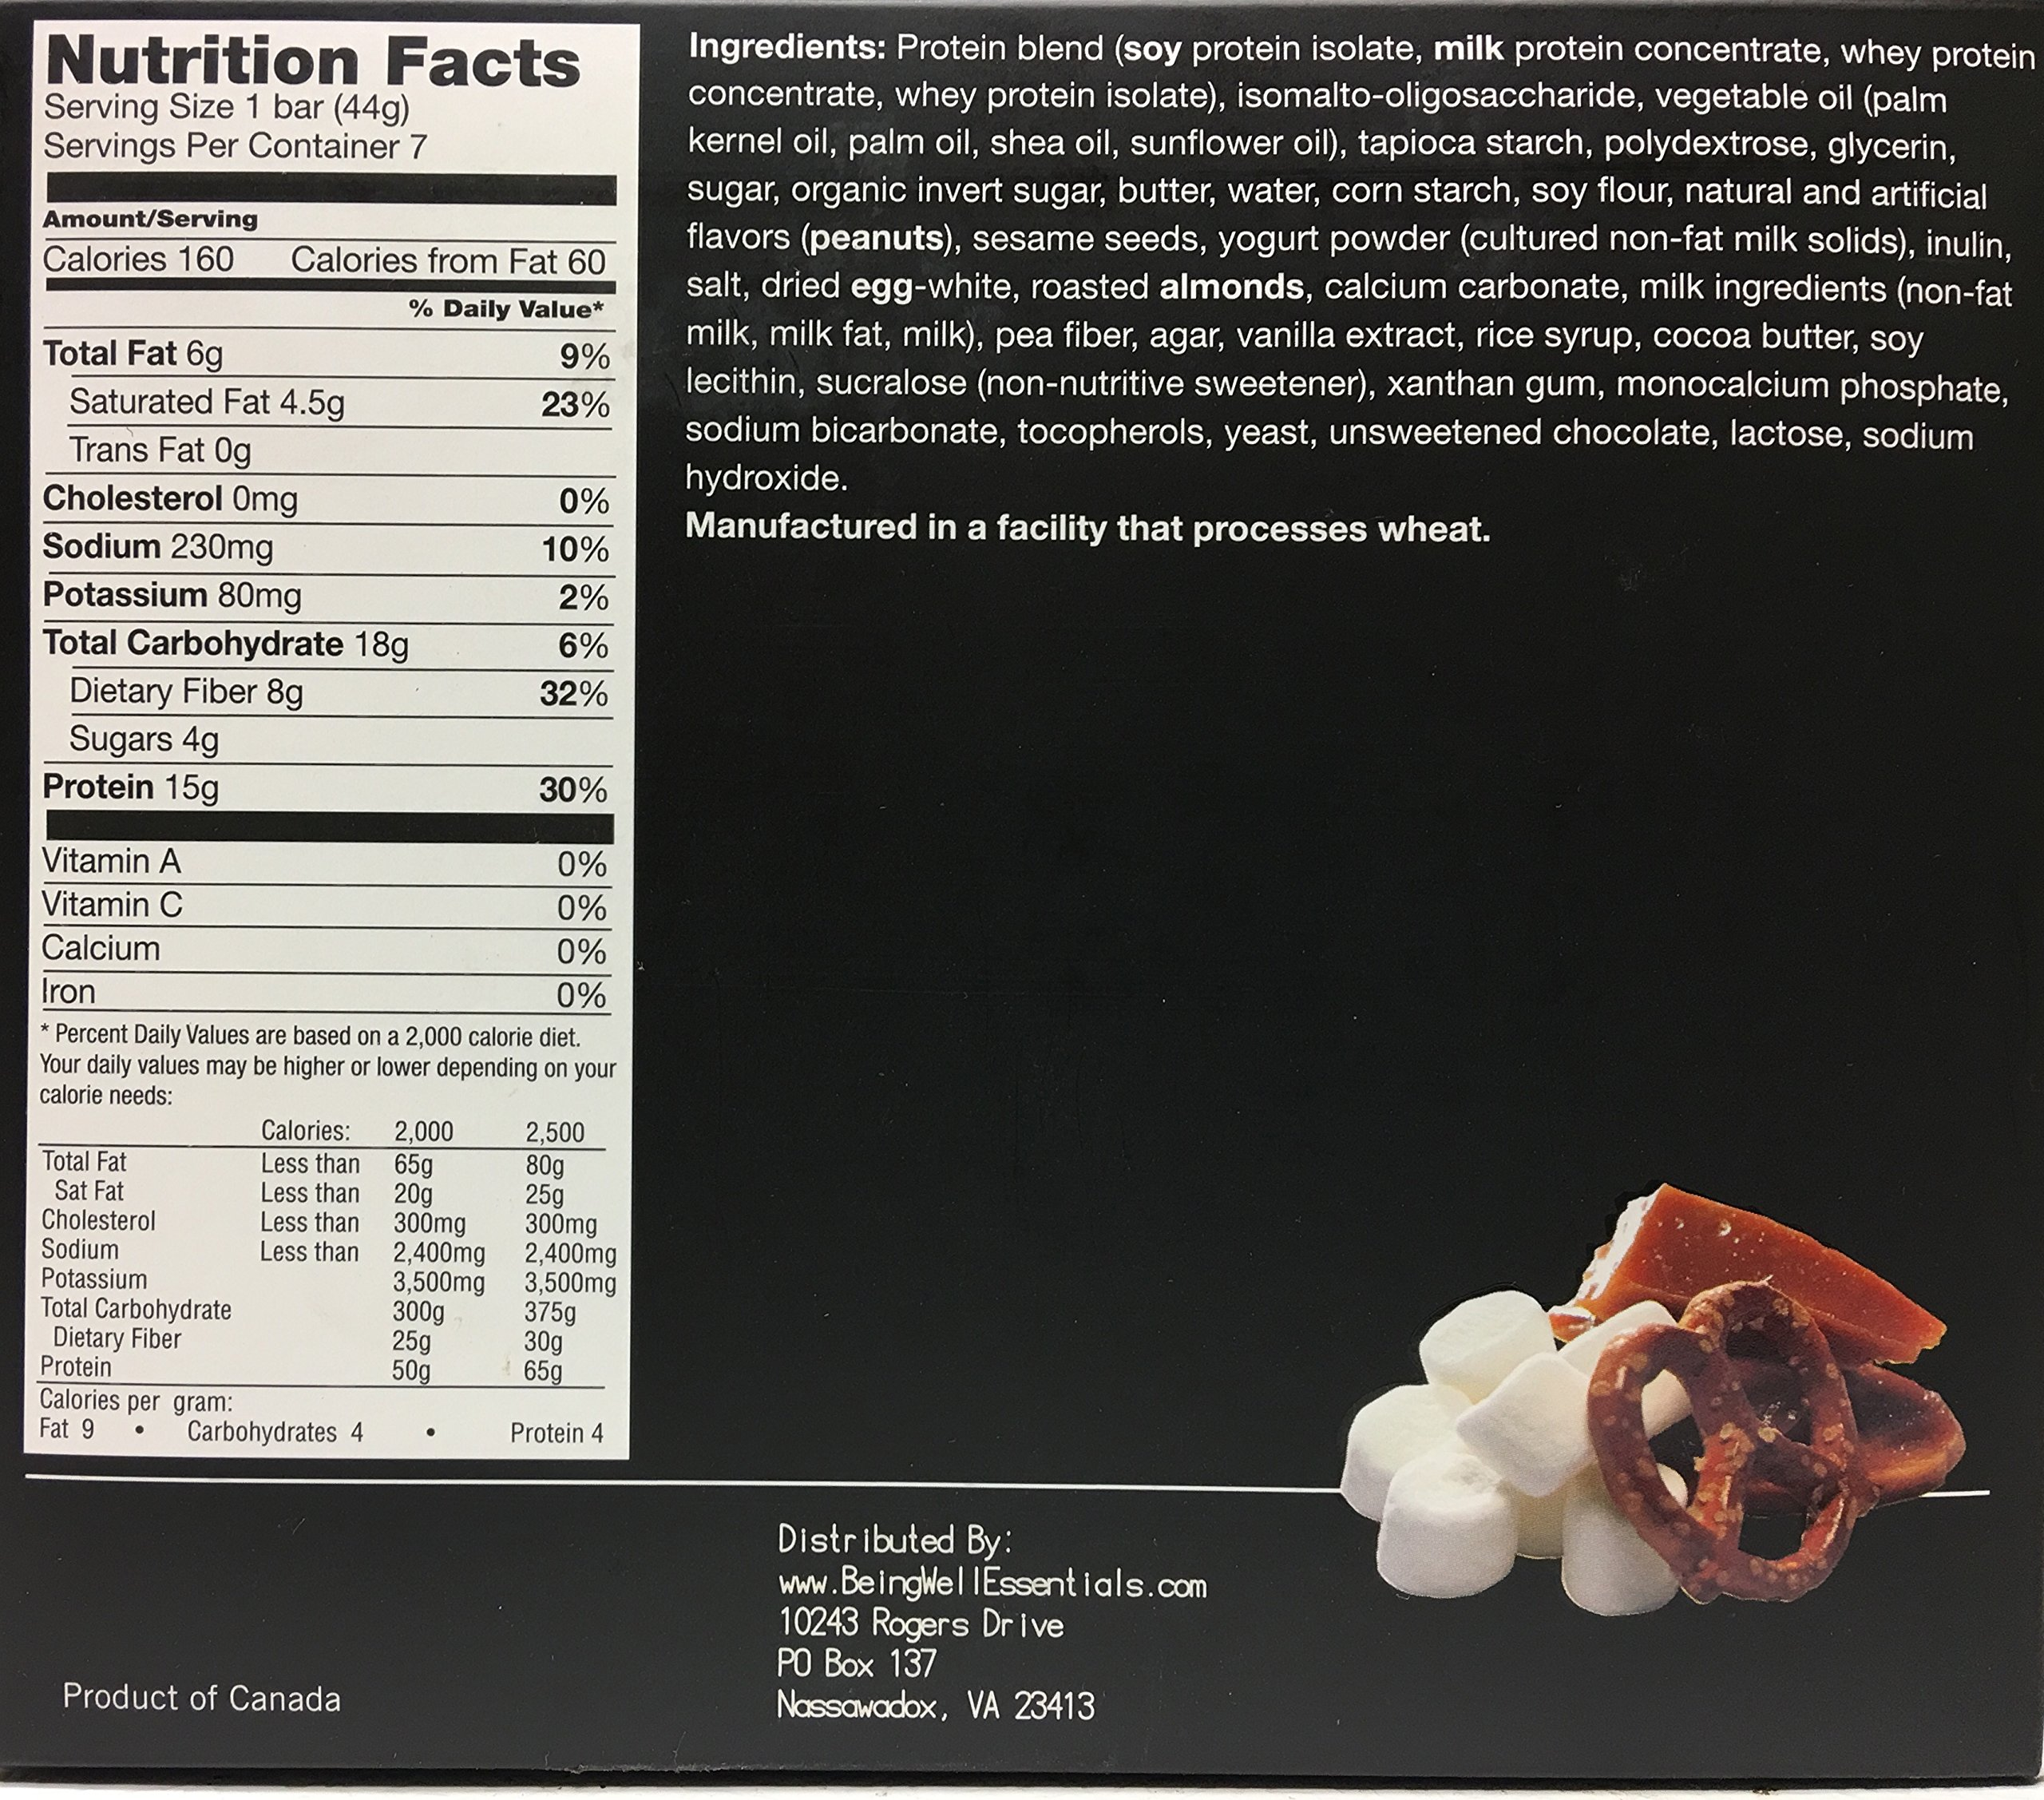 Proti Kind Bariatric Very Low Carb, Low Fat, Low Sugar - Bars Full Case of 84 bars - 12 boxes of 7 each bars - (Salted Toffee Pretzel) by Being Well Essentials (Image #2)